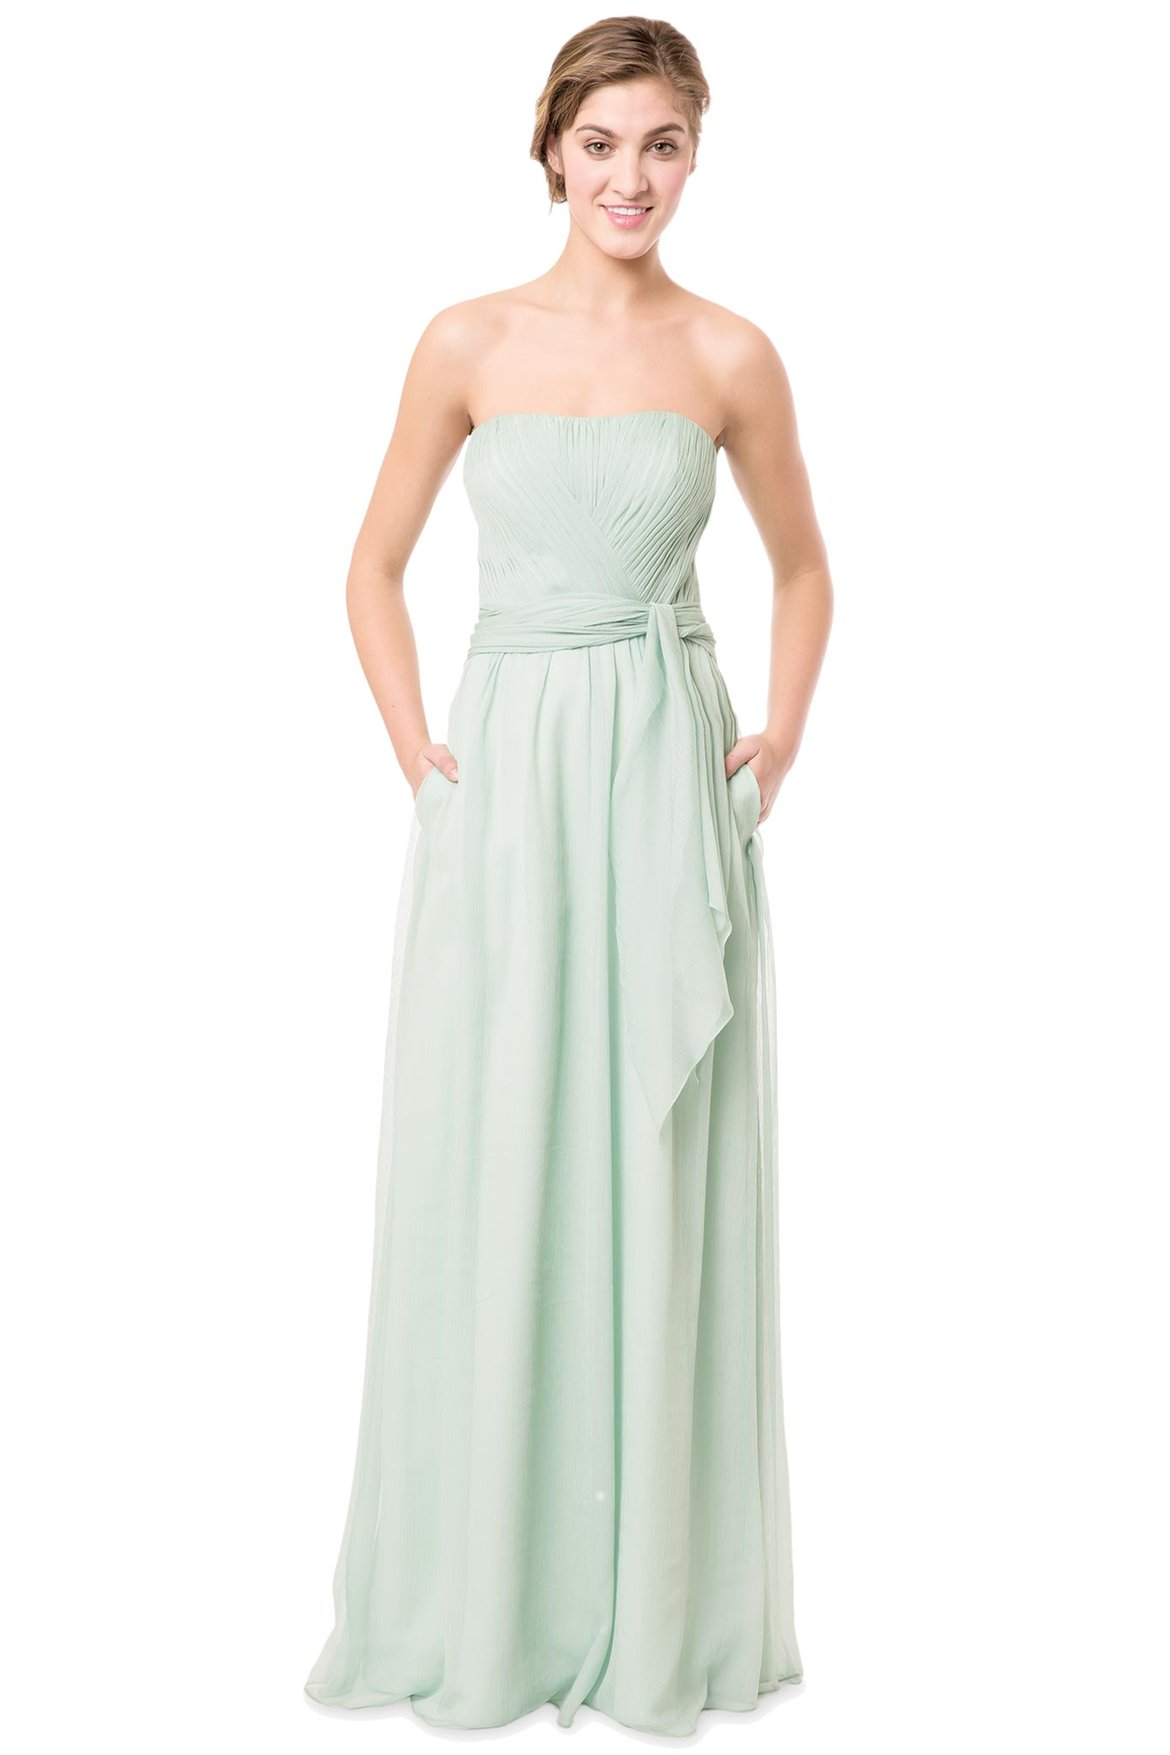 bari jay bridesmaid dress